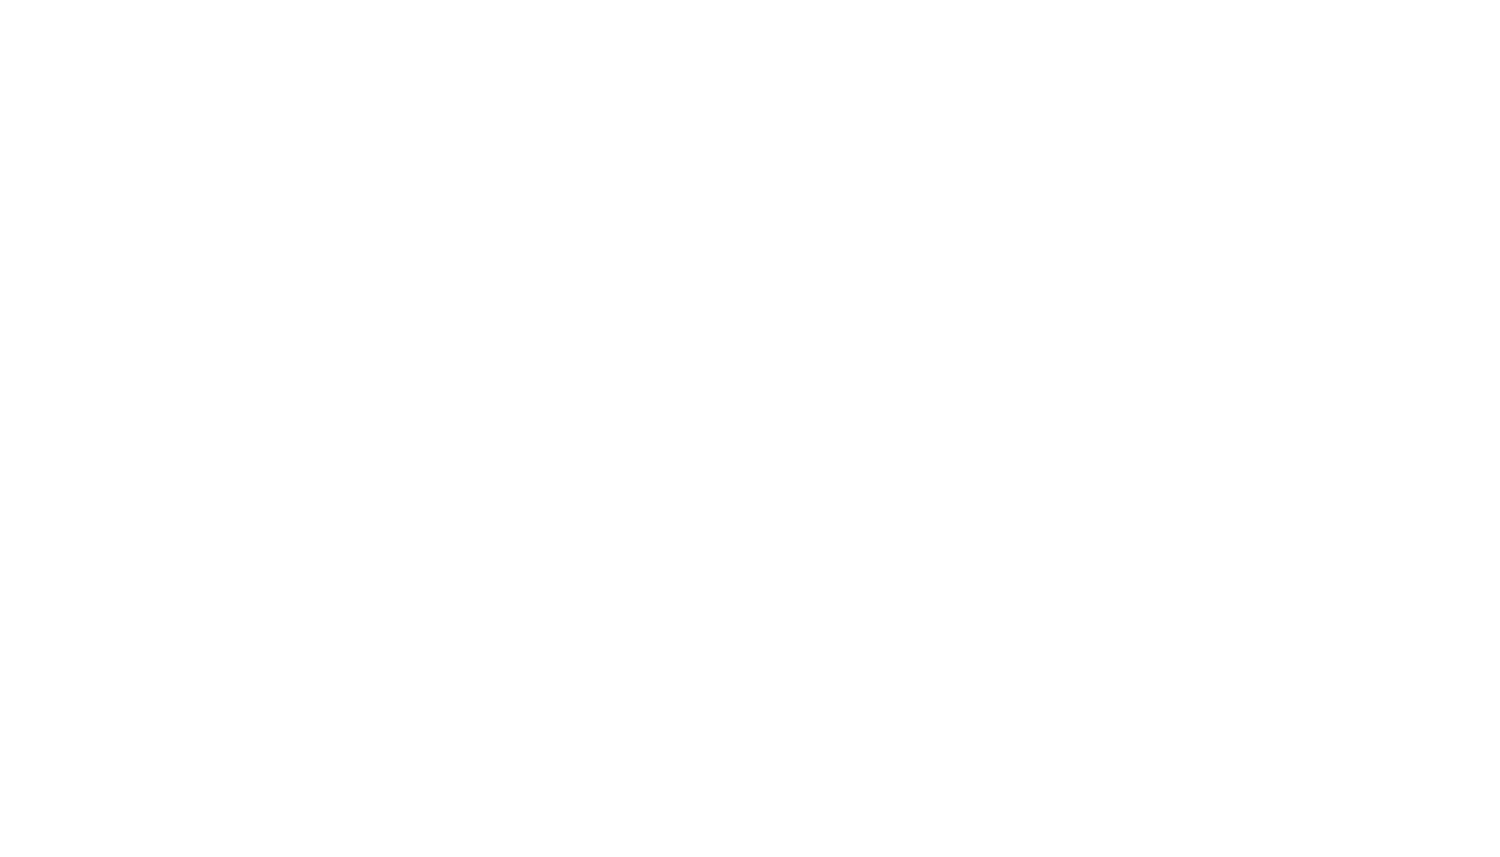 The Dinner Gathering